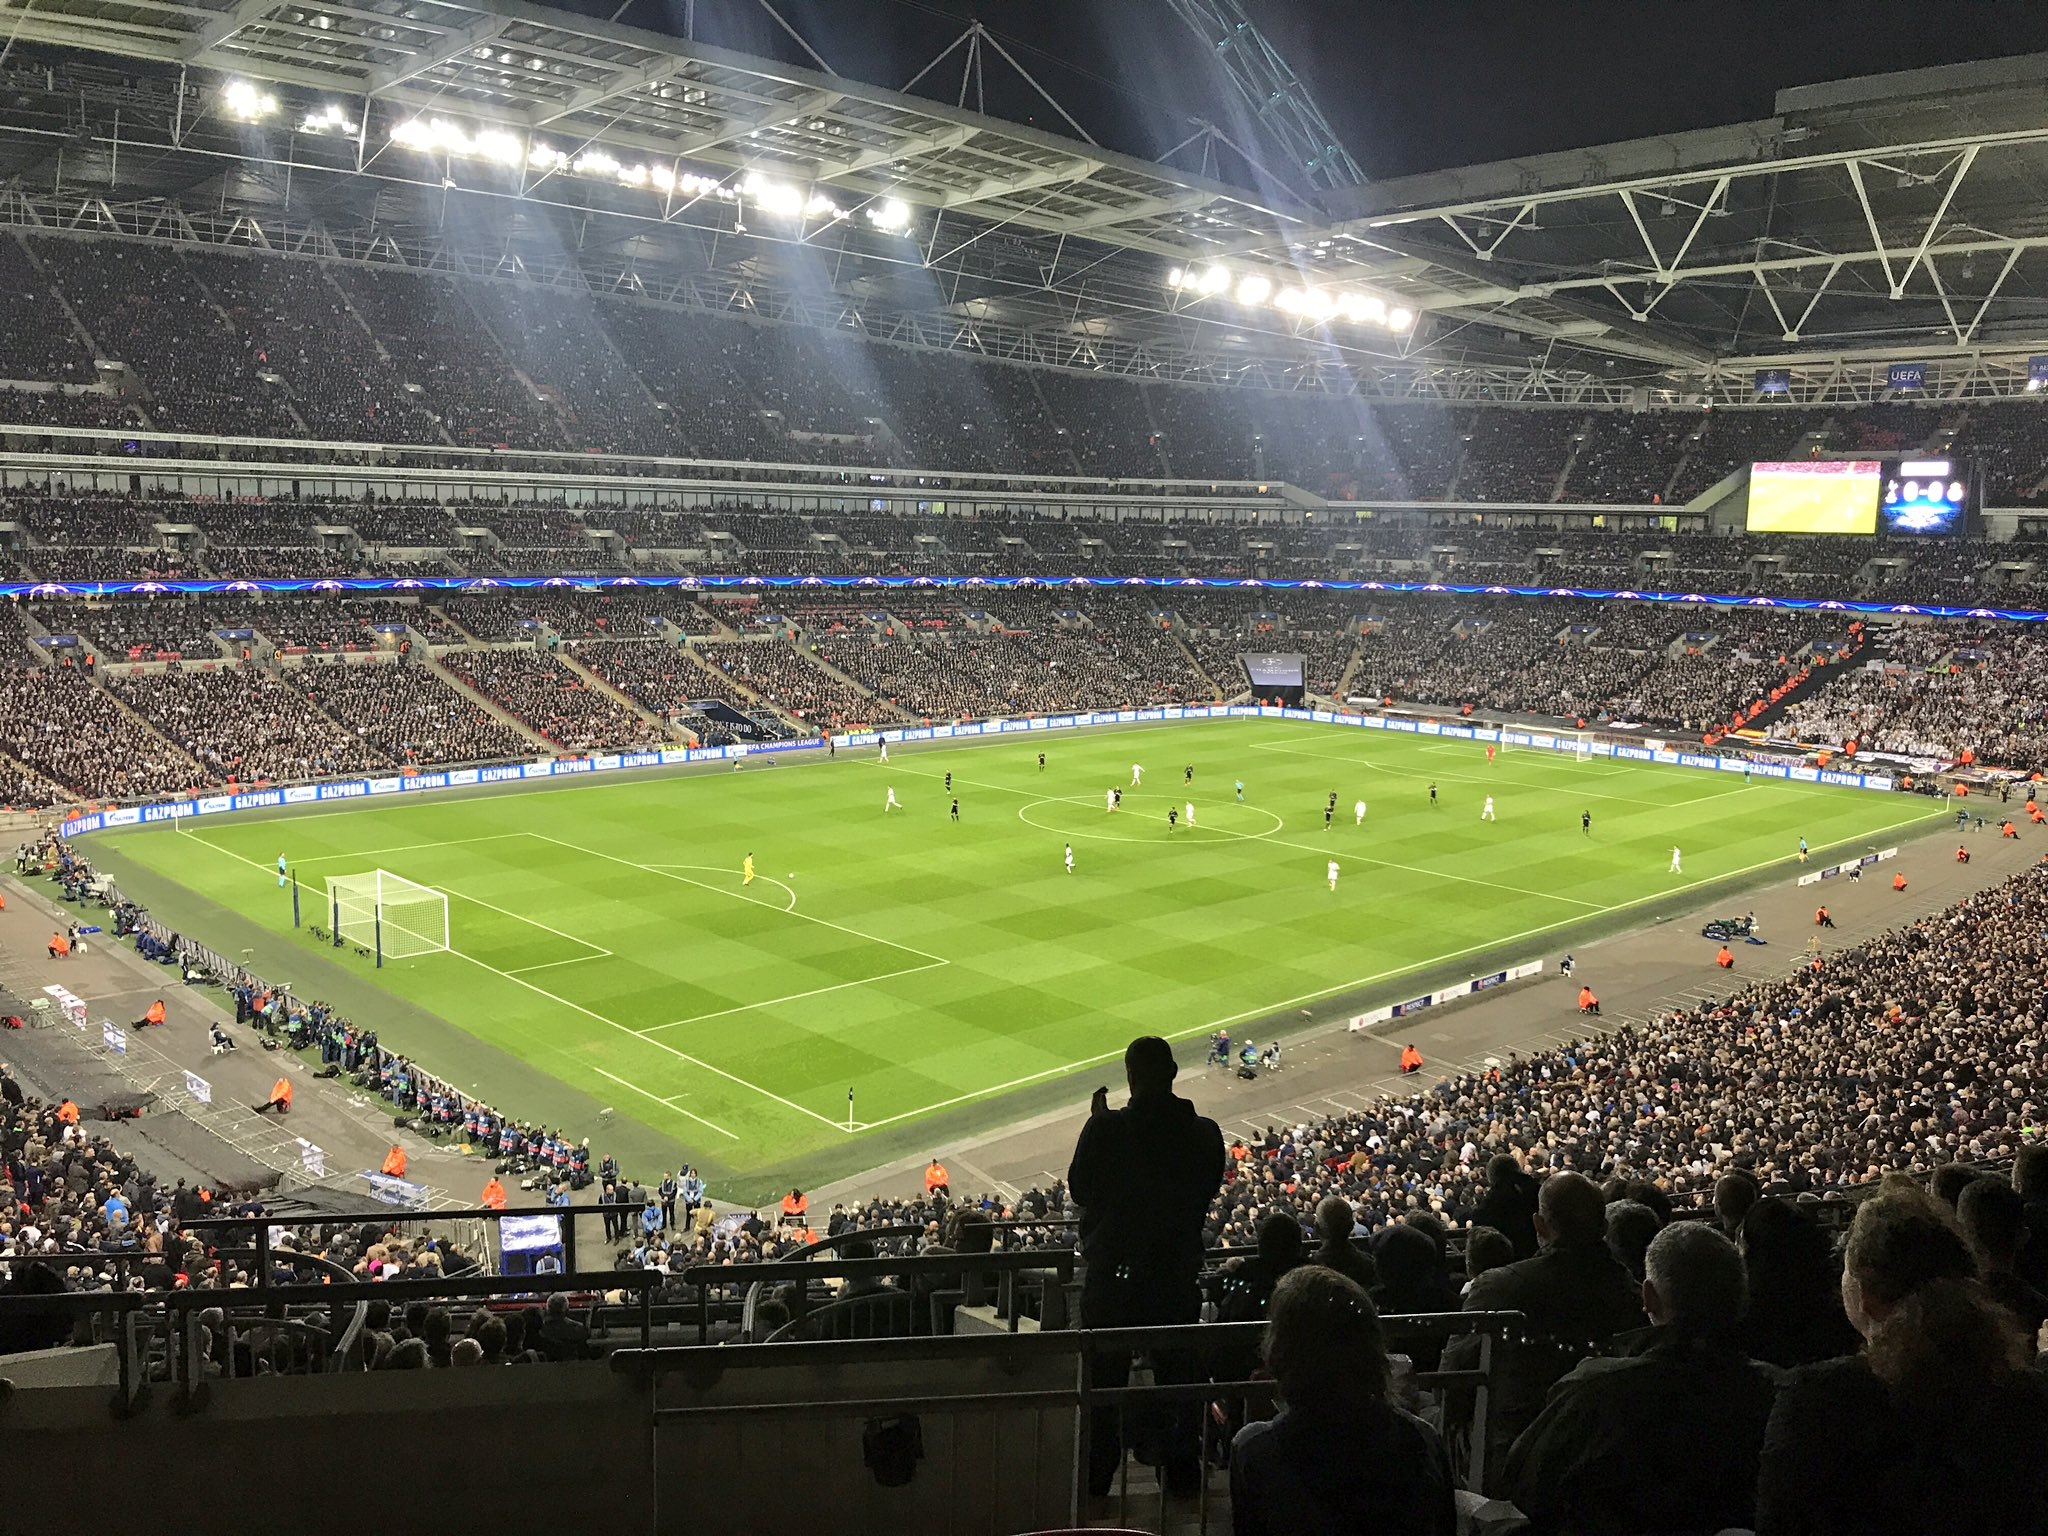 The @btsportfootball studio views this evening at Wembley! Predicting a 1-2 #Madrid win... thoughts people?! #UCL https://t.co/phEVCl2cOb